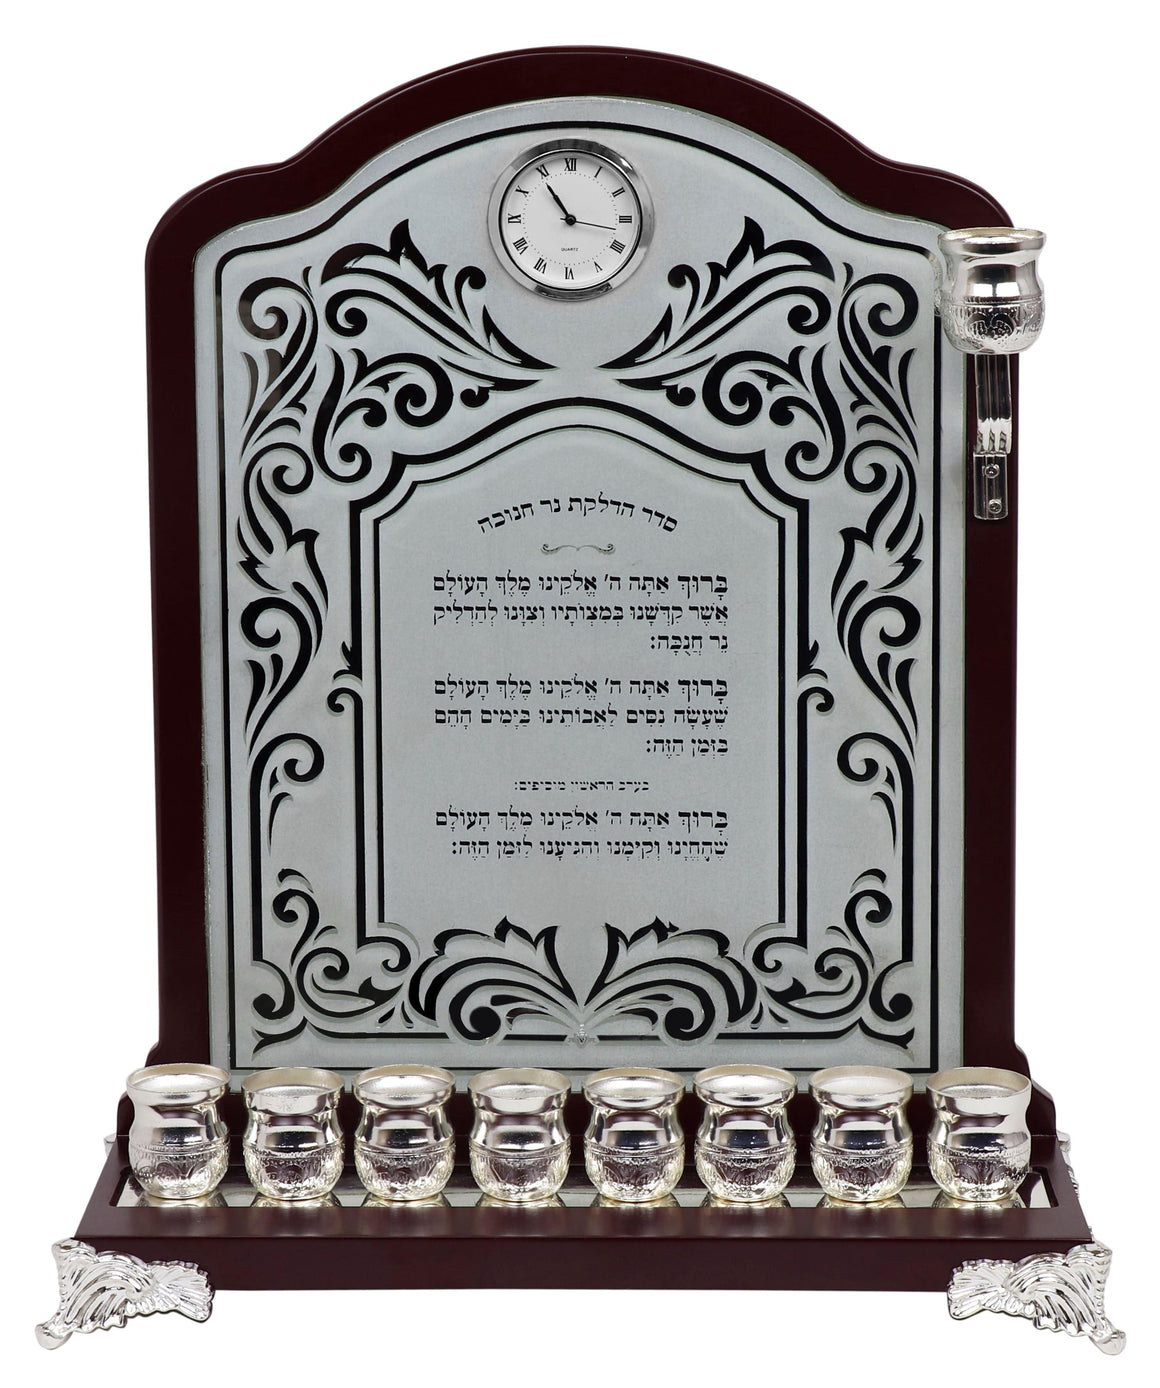 "Mahogany Wall Menorah With Clock Brachot for chanukah candle lighting On Mirror 14x9.5 "" Nua"